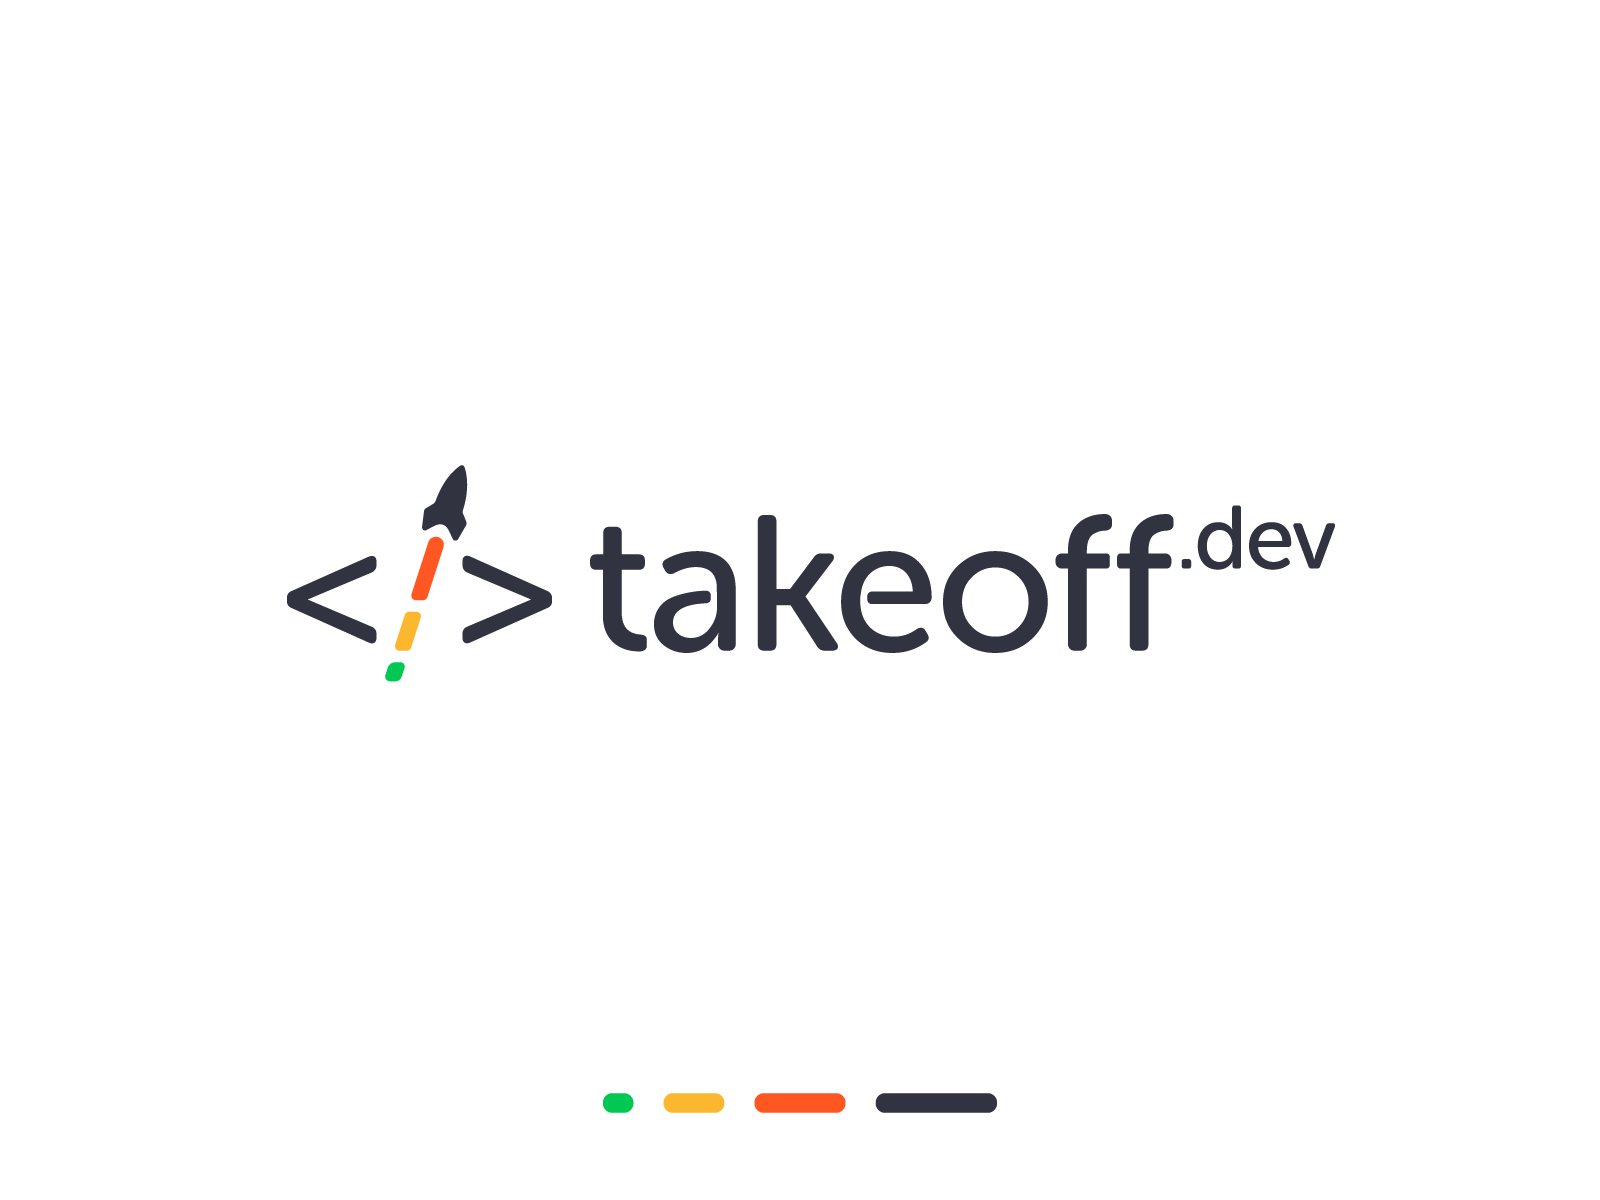 Takeoff – Logo Design